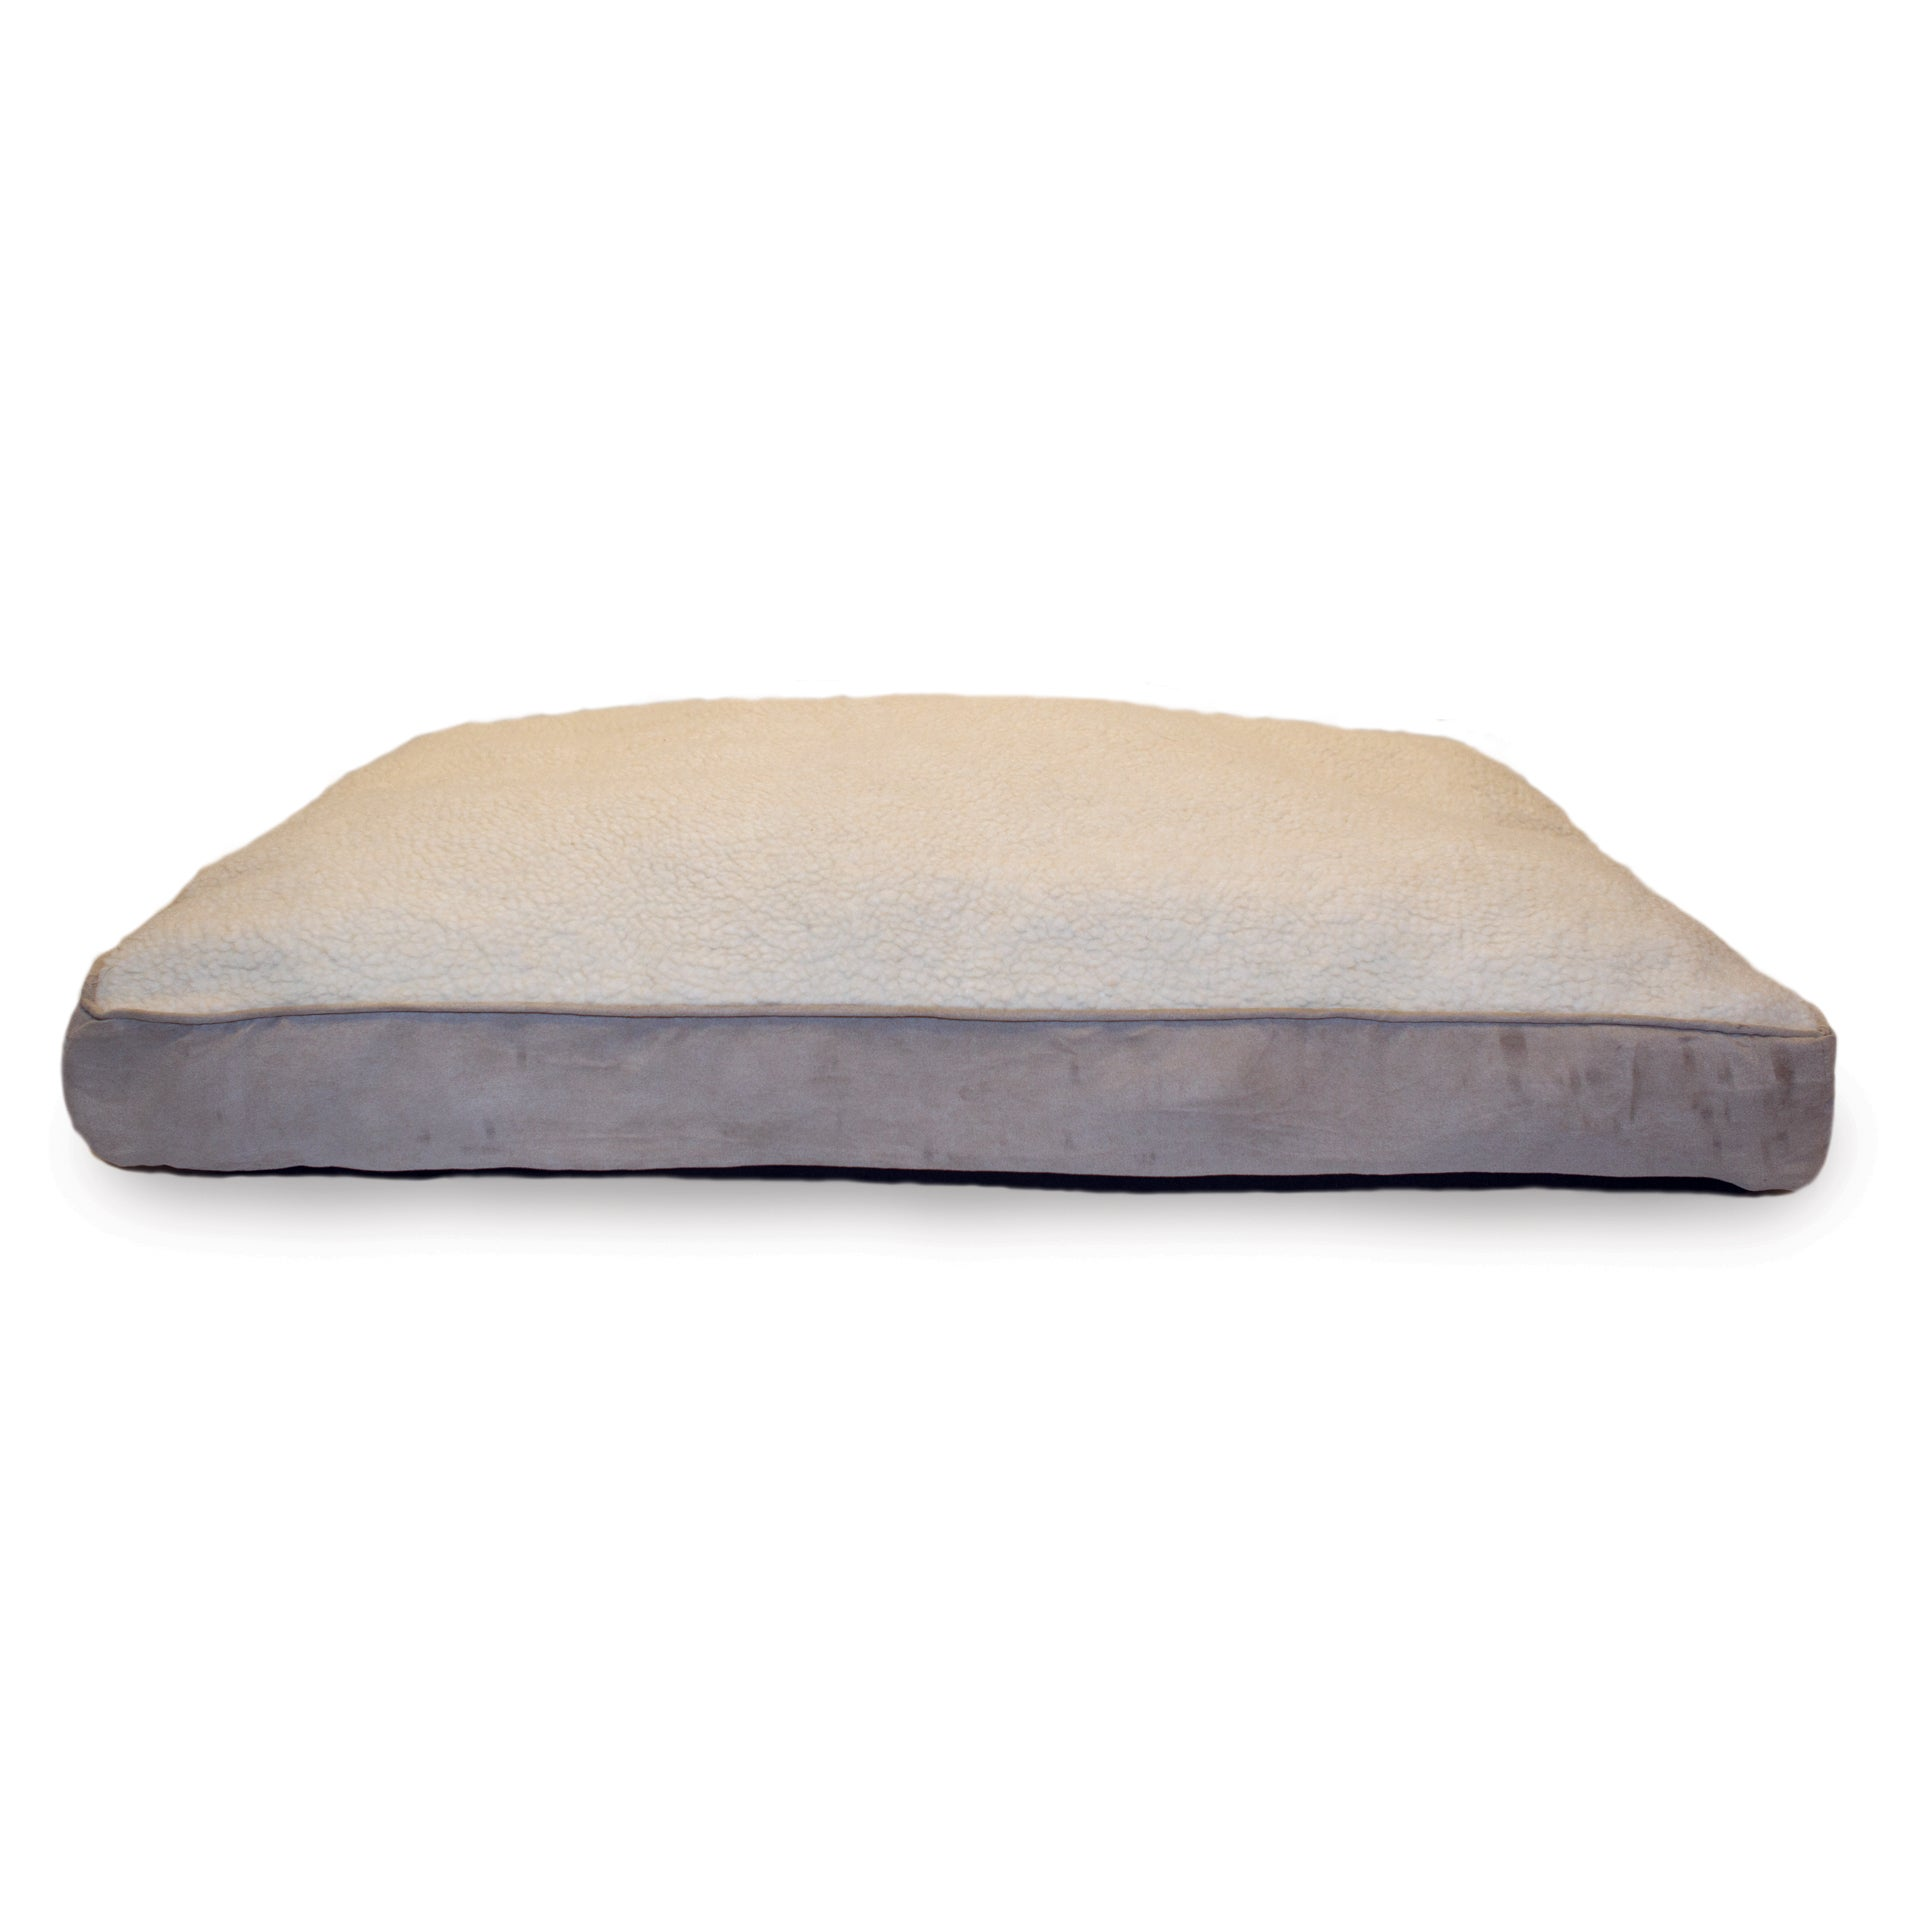 FurHaven Sherpa and Suede Deluxe Pillow Pet Bed (Large Cl...